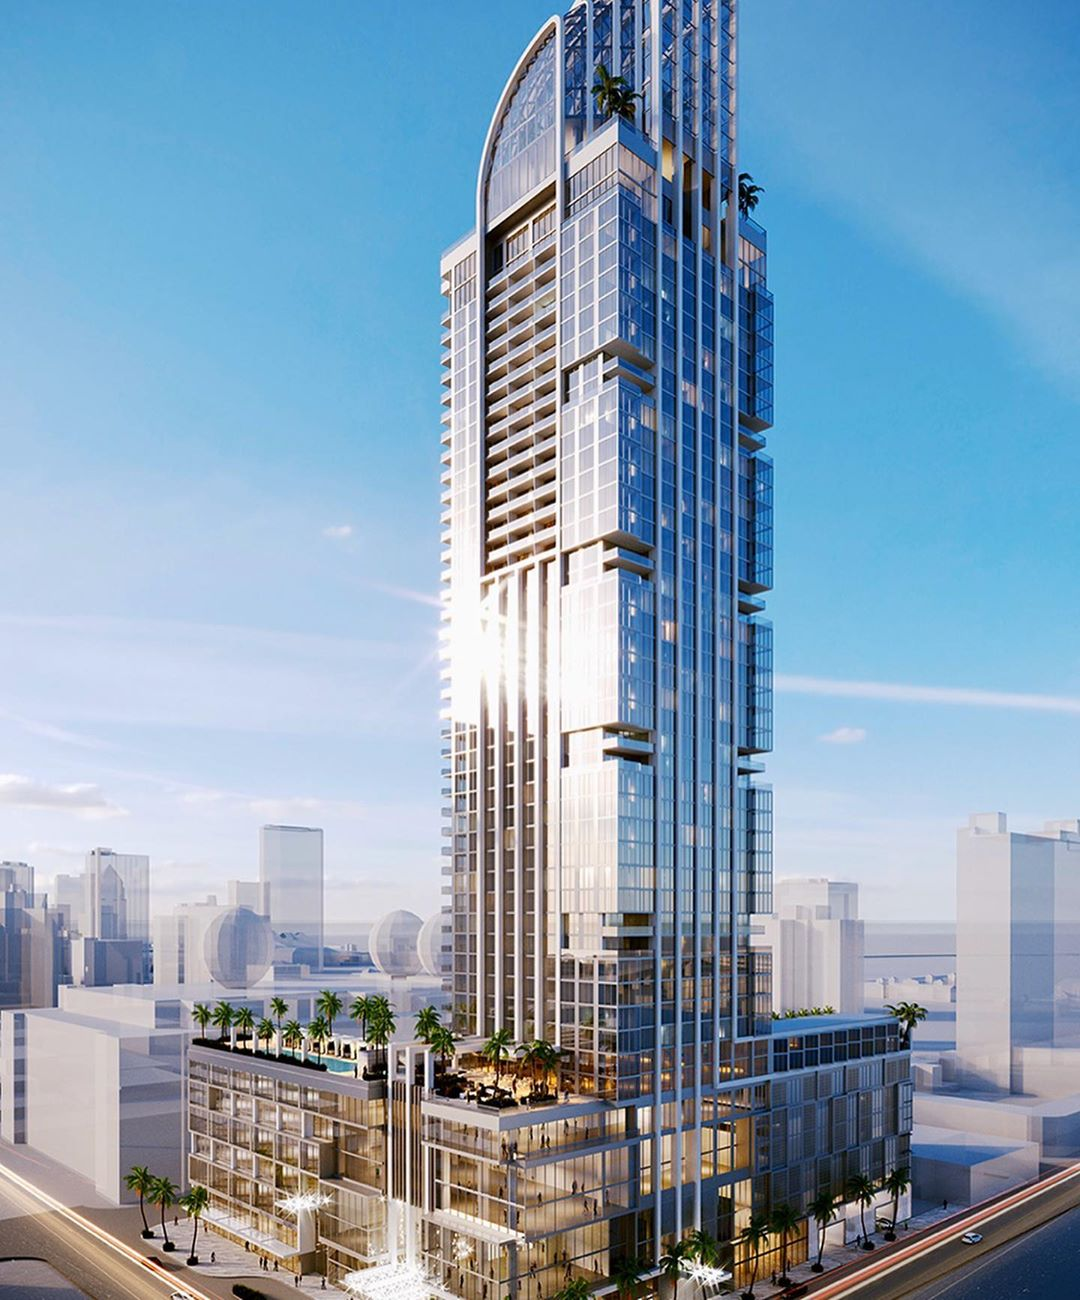 Groundbreaking of the Legacy Hotel and Residences Miami is set to break ground this year 2021.